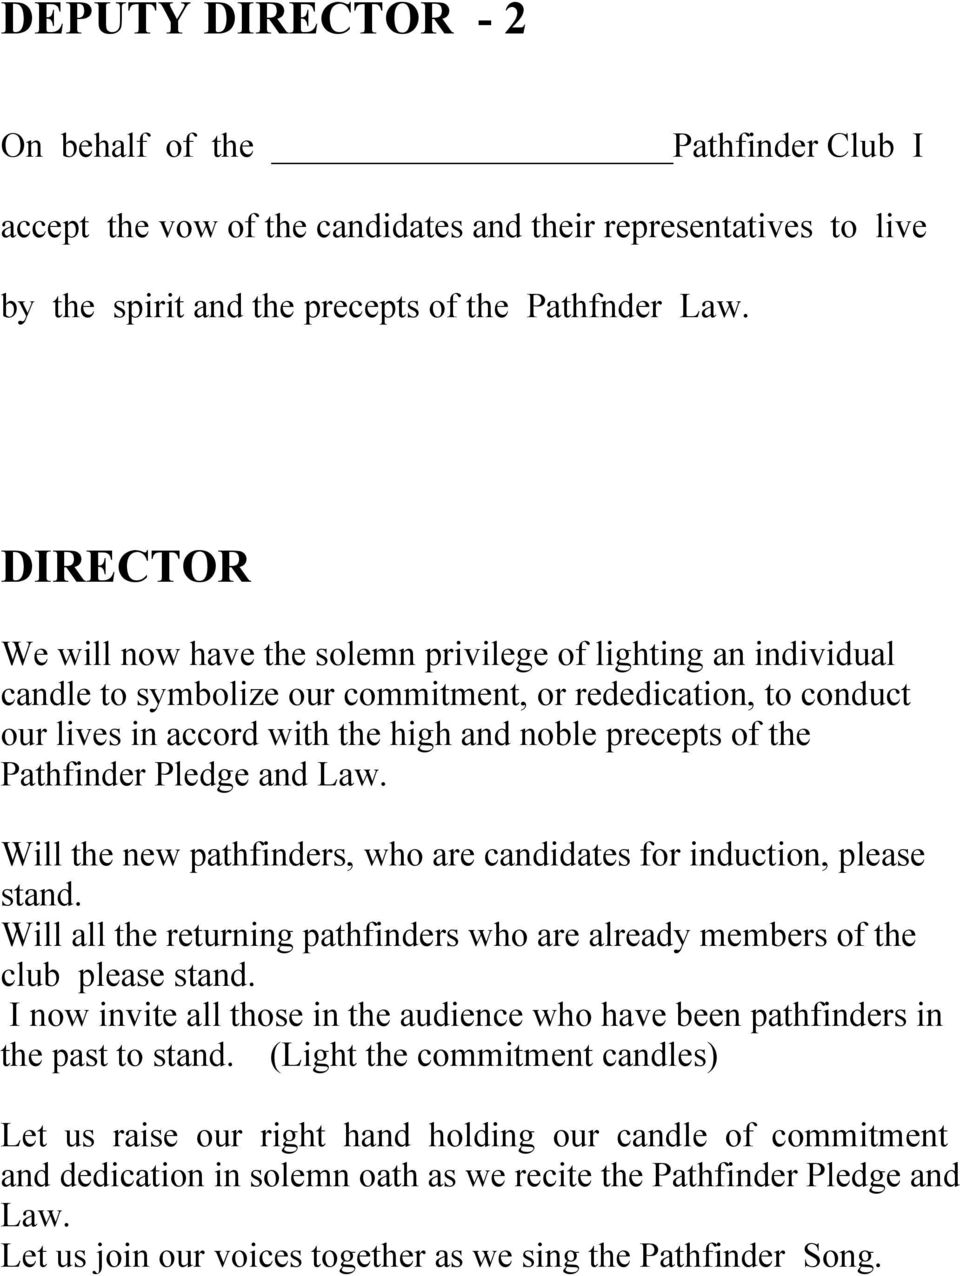 Pathfinder Pledge and Law. Will the new pathfinders, who are candidates for induction, please stand. Will all the returning pathfinders who are already members of the club please stand.